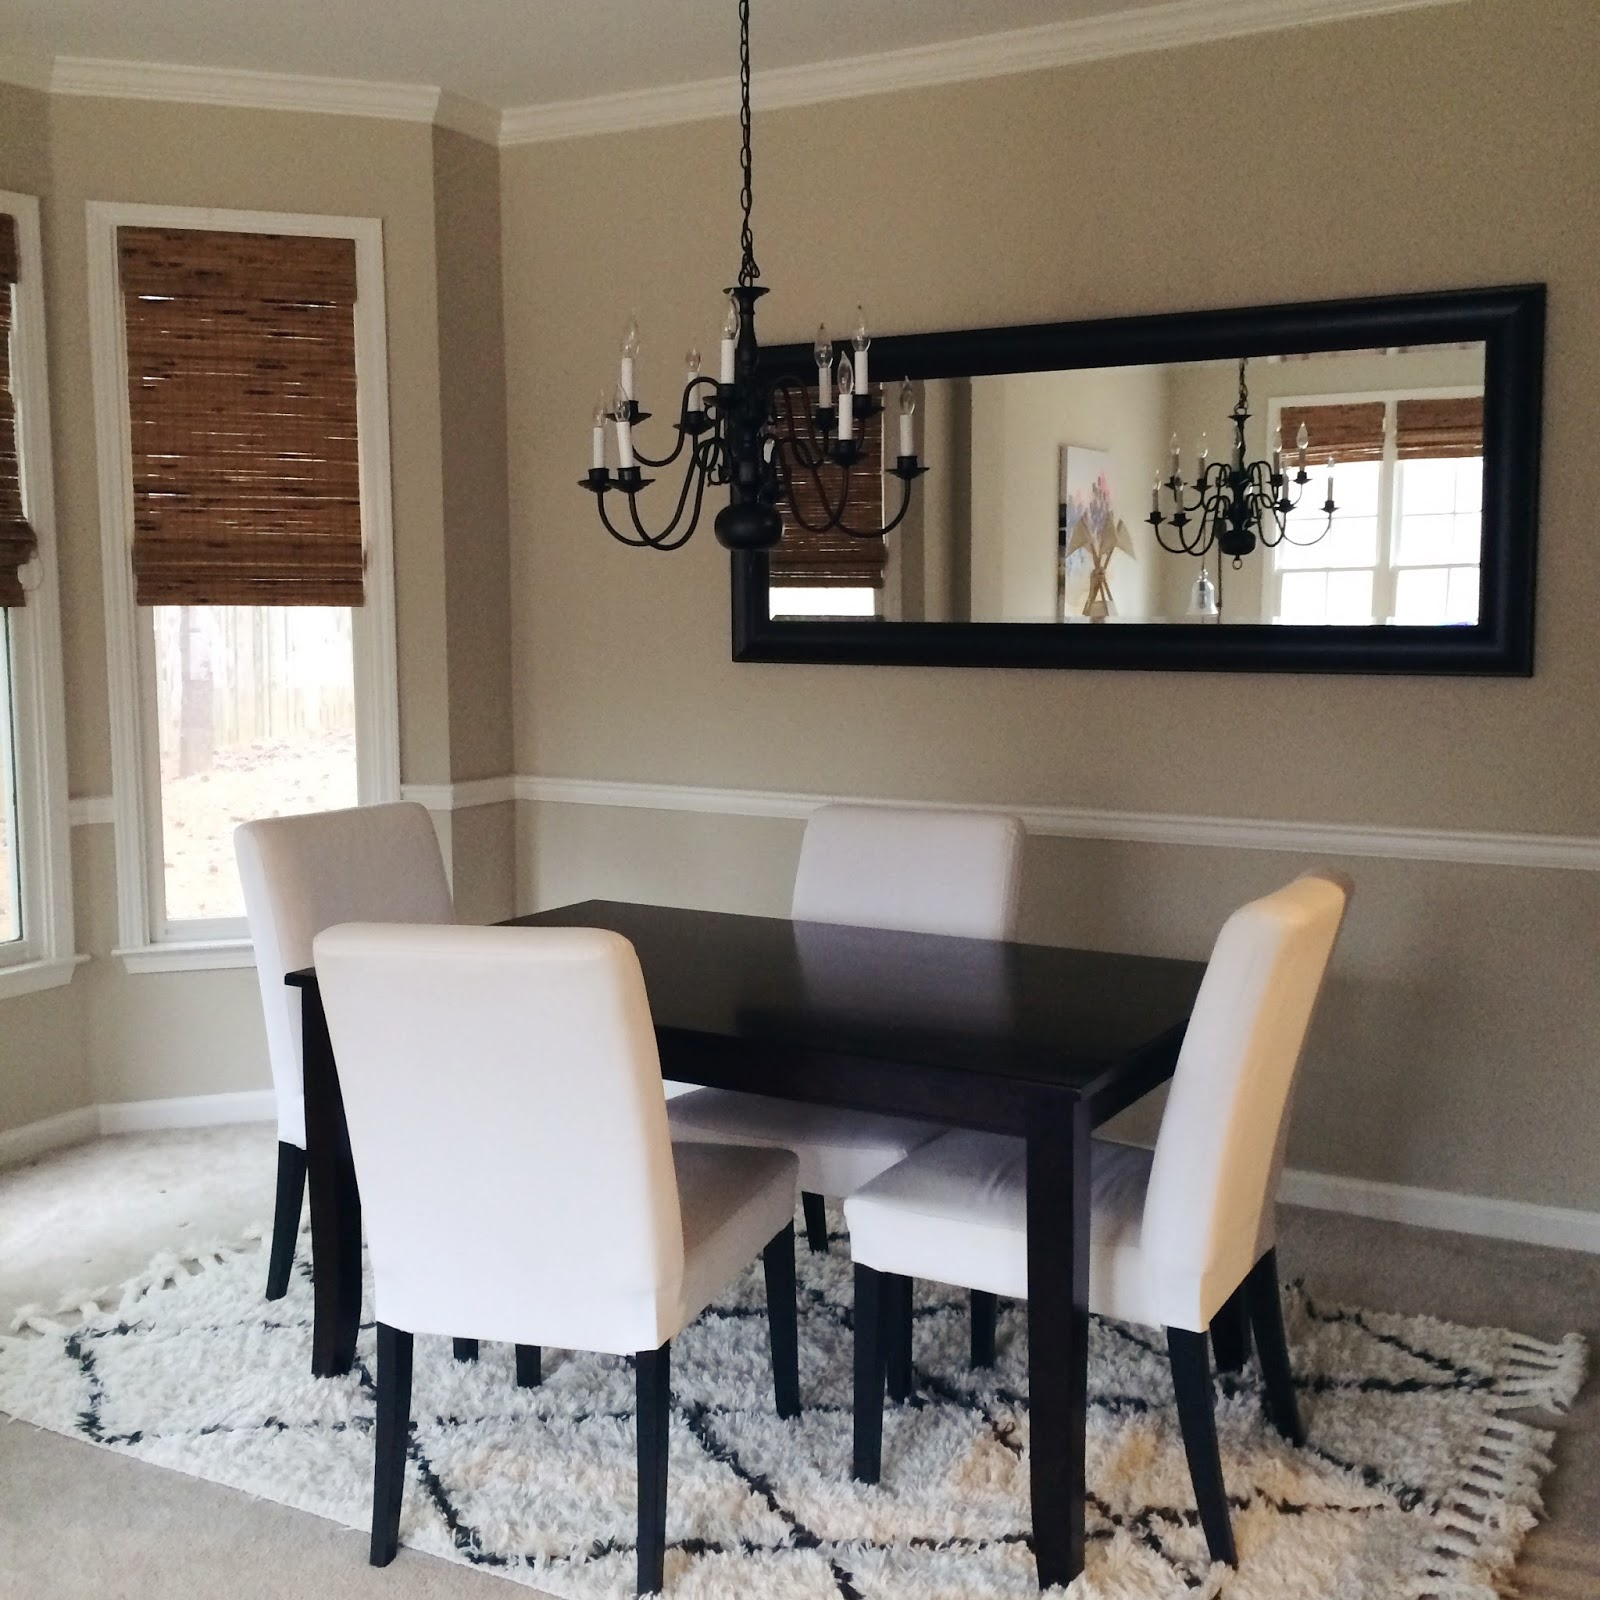 fun dining rooms | Dining Room Update & Weekend Fun - GarvinAndCo.com